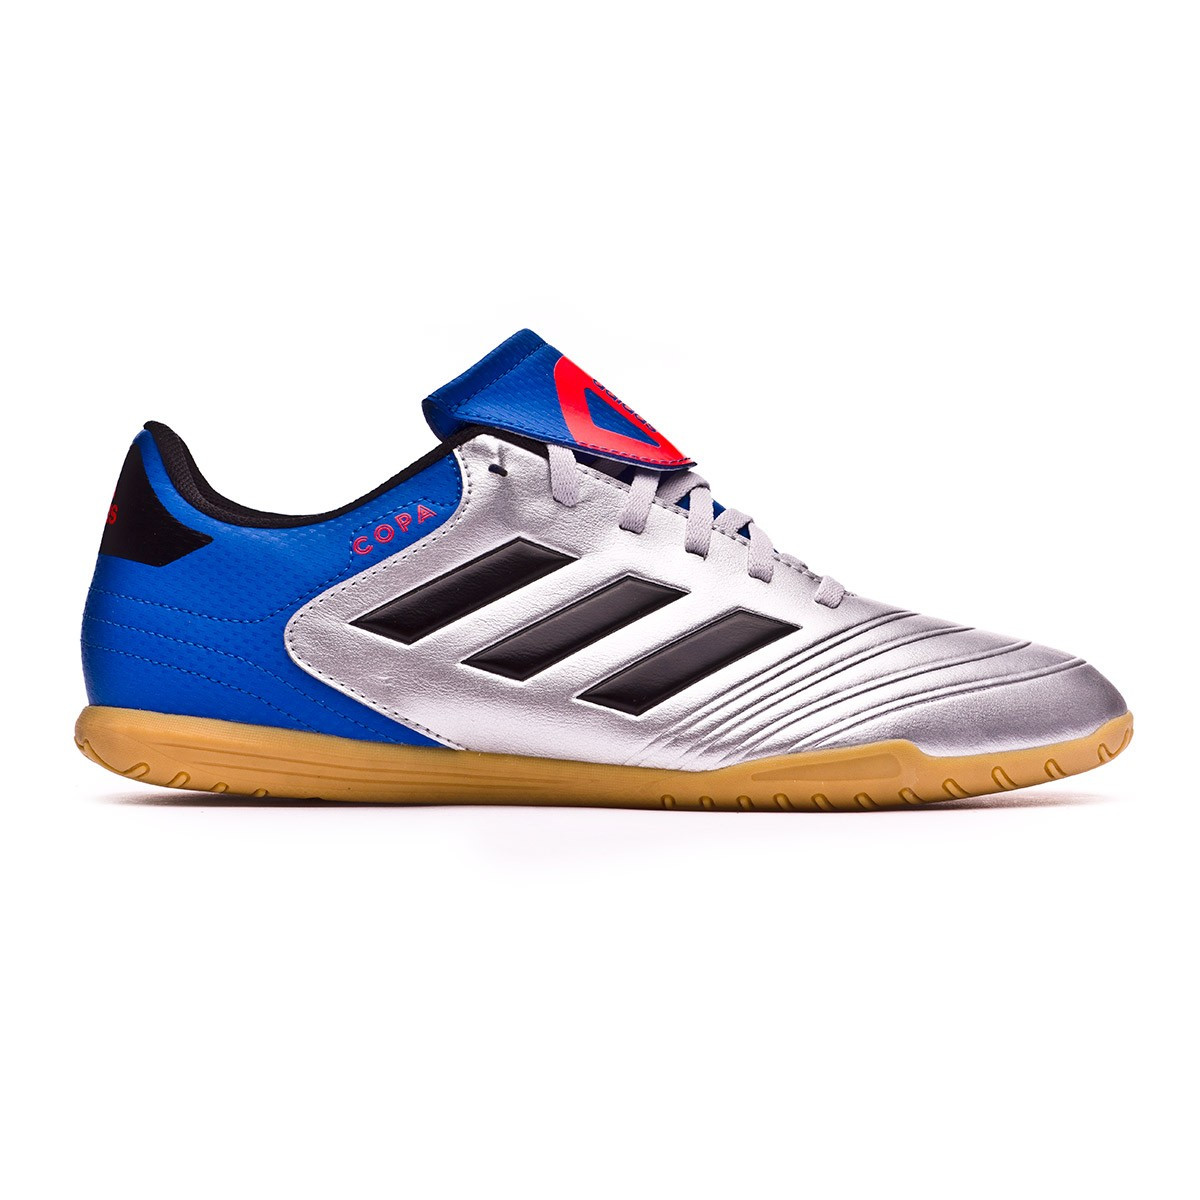 size 40 950a0 1d24d Futsal Boot adidas Copa Tango 18.4 IN Silver metallic-Core black-Football  blue - Football store Fútbol Emotion